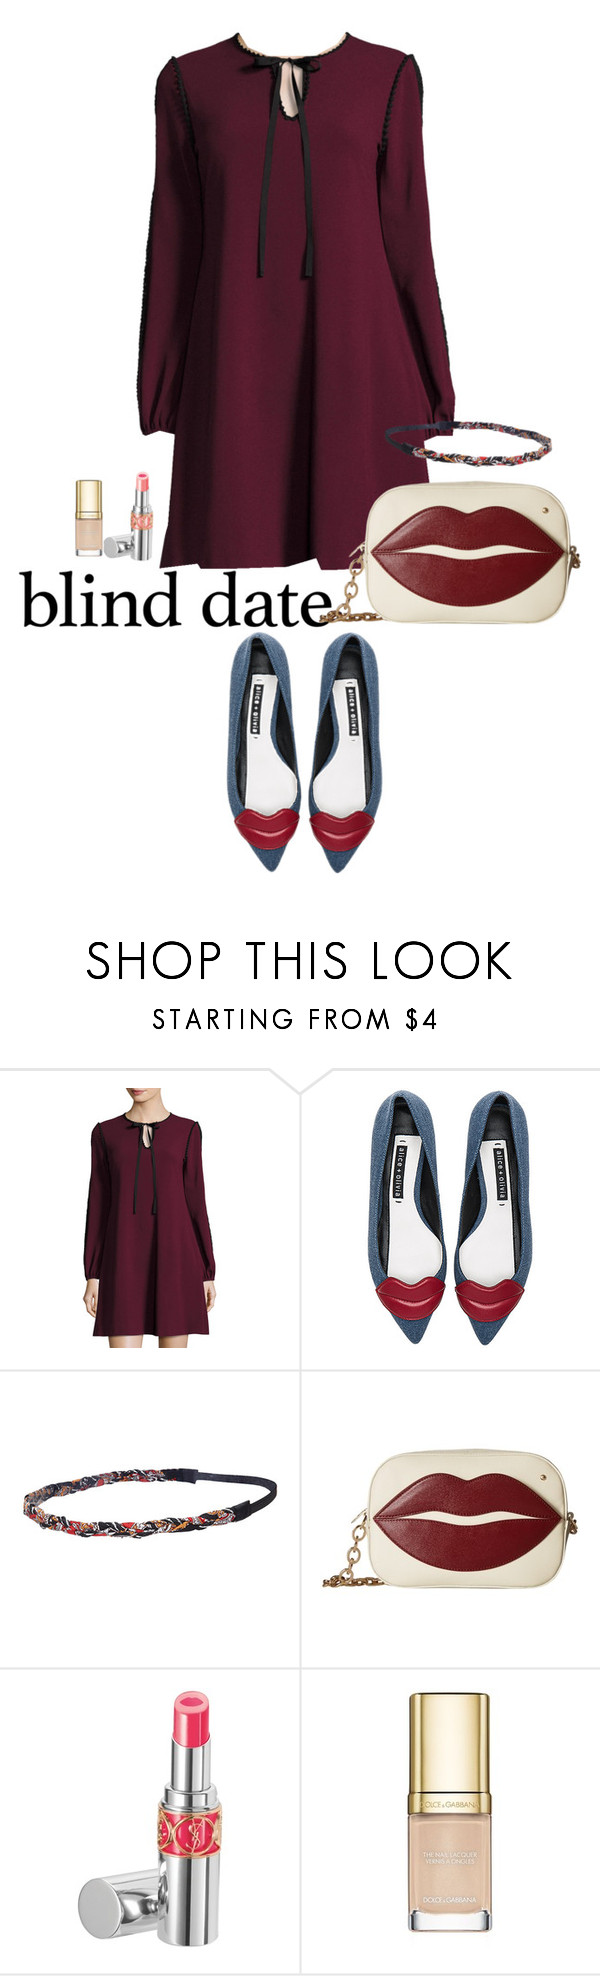 """""""Blind Date"""" by bellamal ❤ liked on Polyvore featuring Taylor, Alice + Olivia, Forever 21, Charlotte Olympia, Yves Saint Laurent, Dolce&Gabbana and blinddate"""